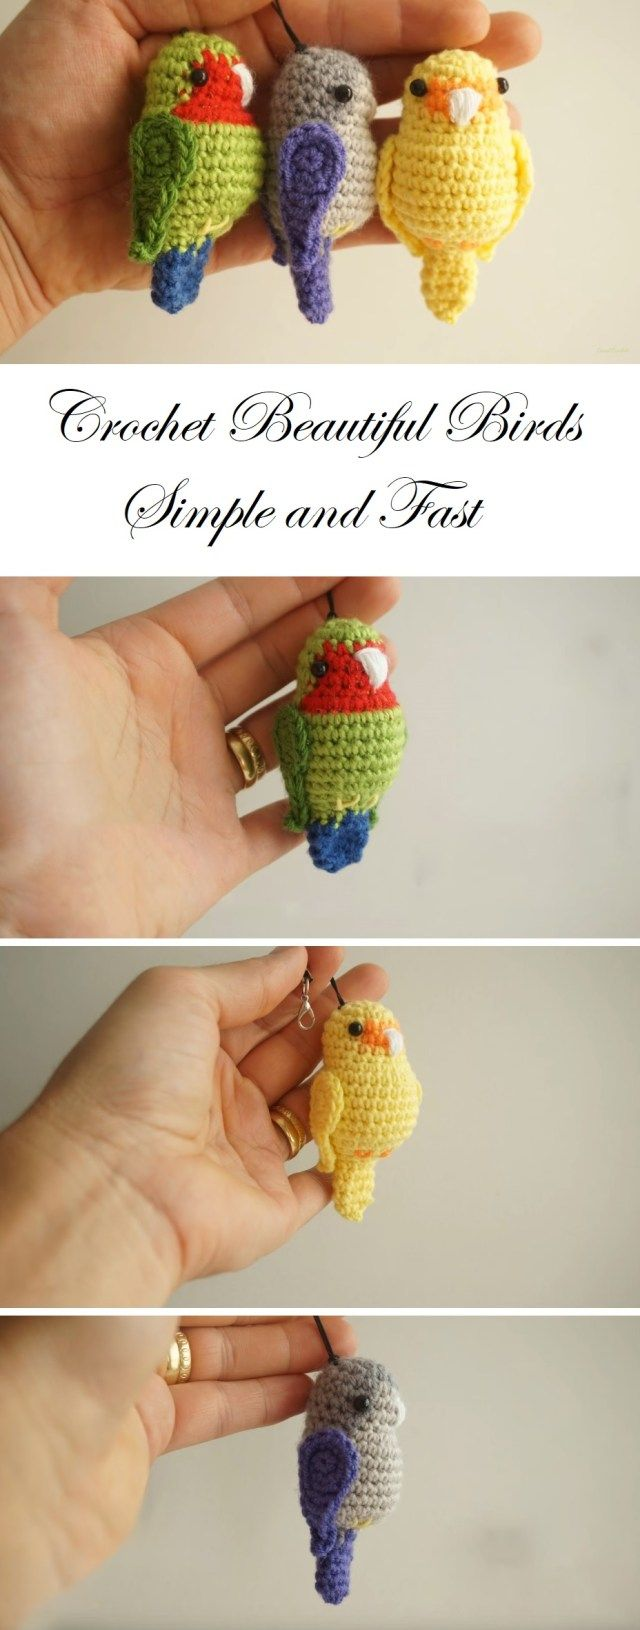 Cute Birds Crochet Tutorial and Pattern #amigurumitutorial